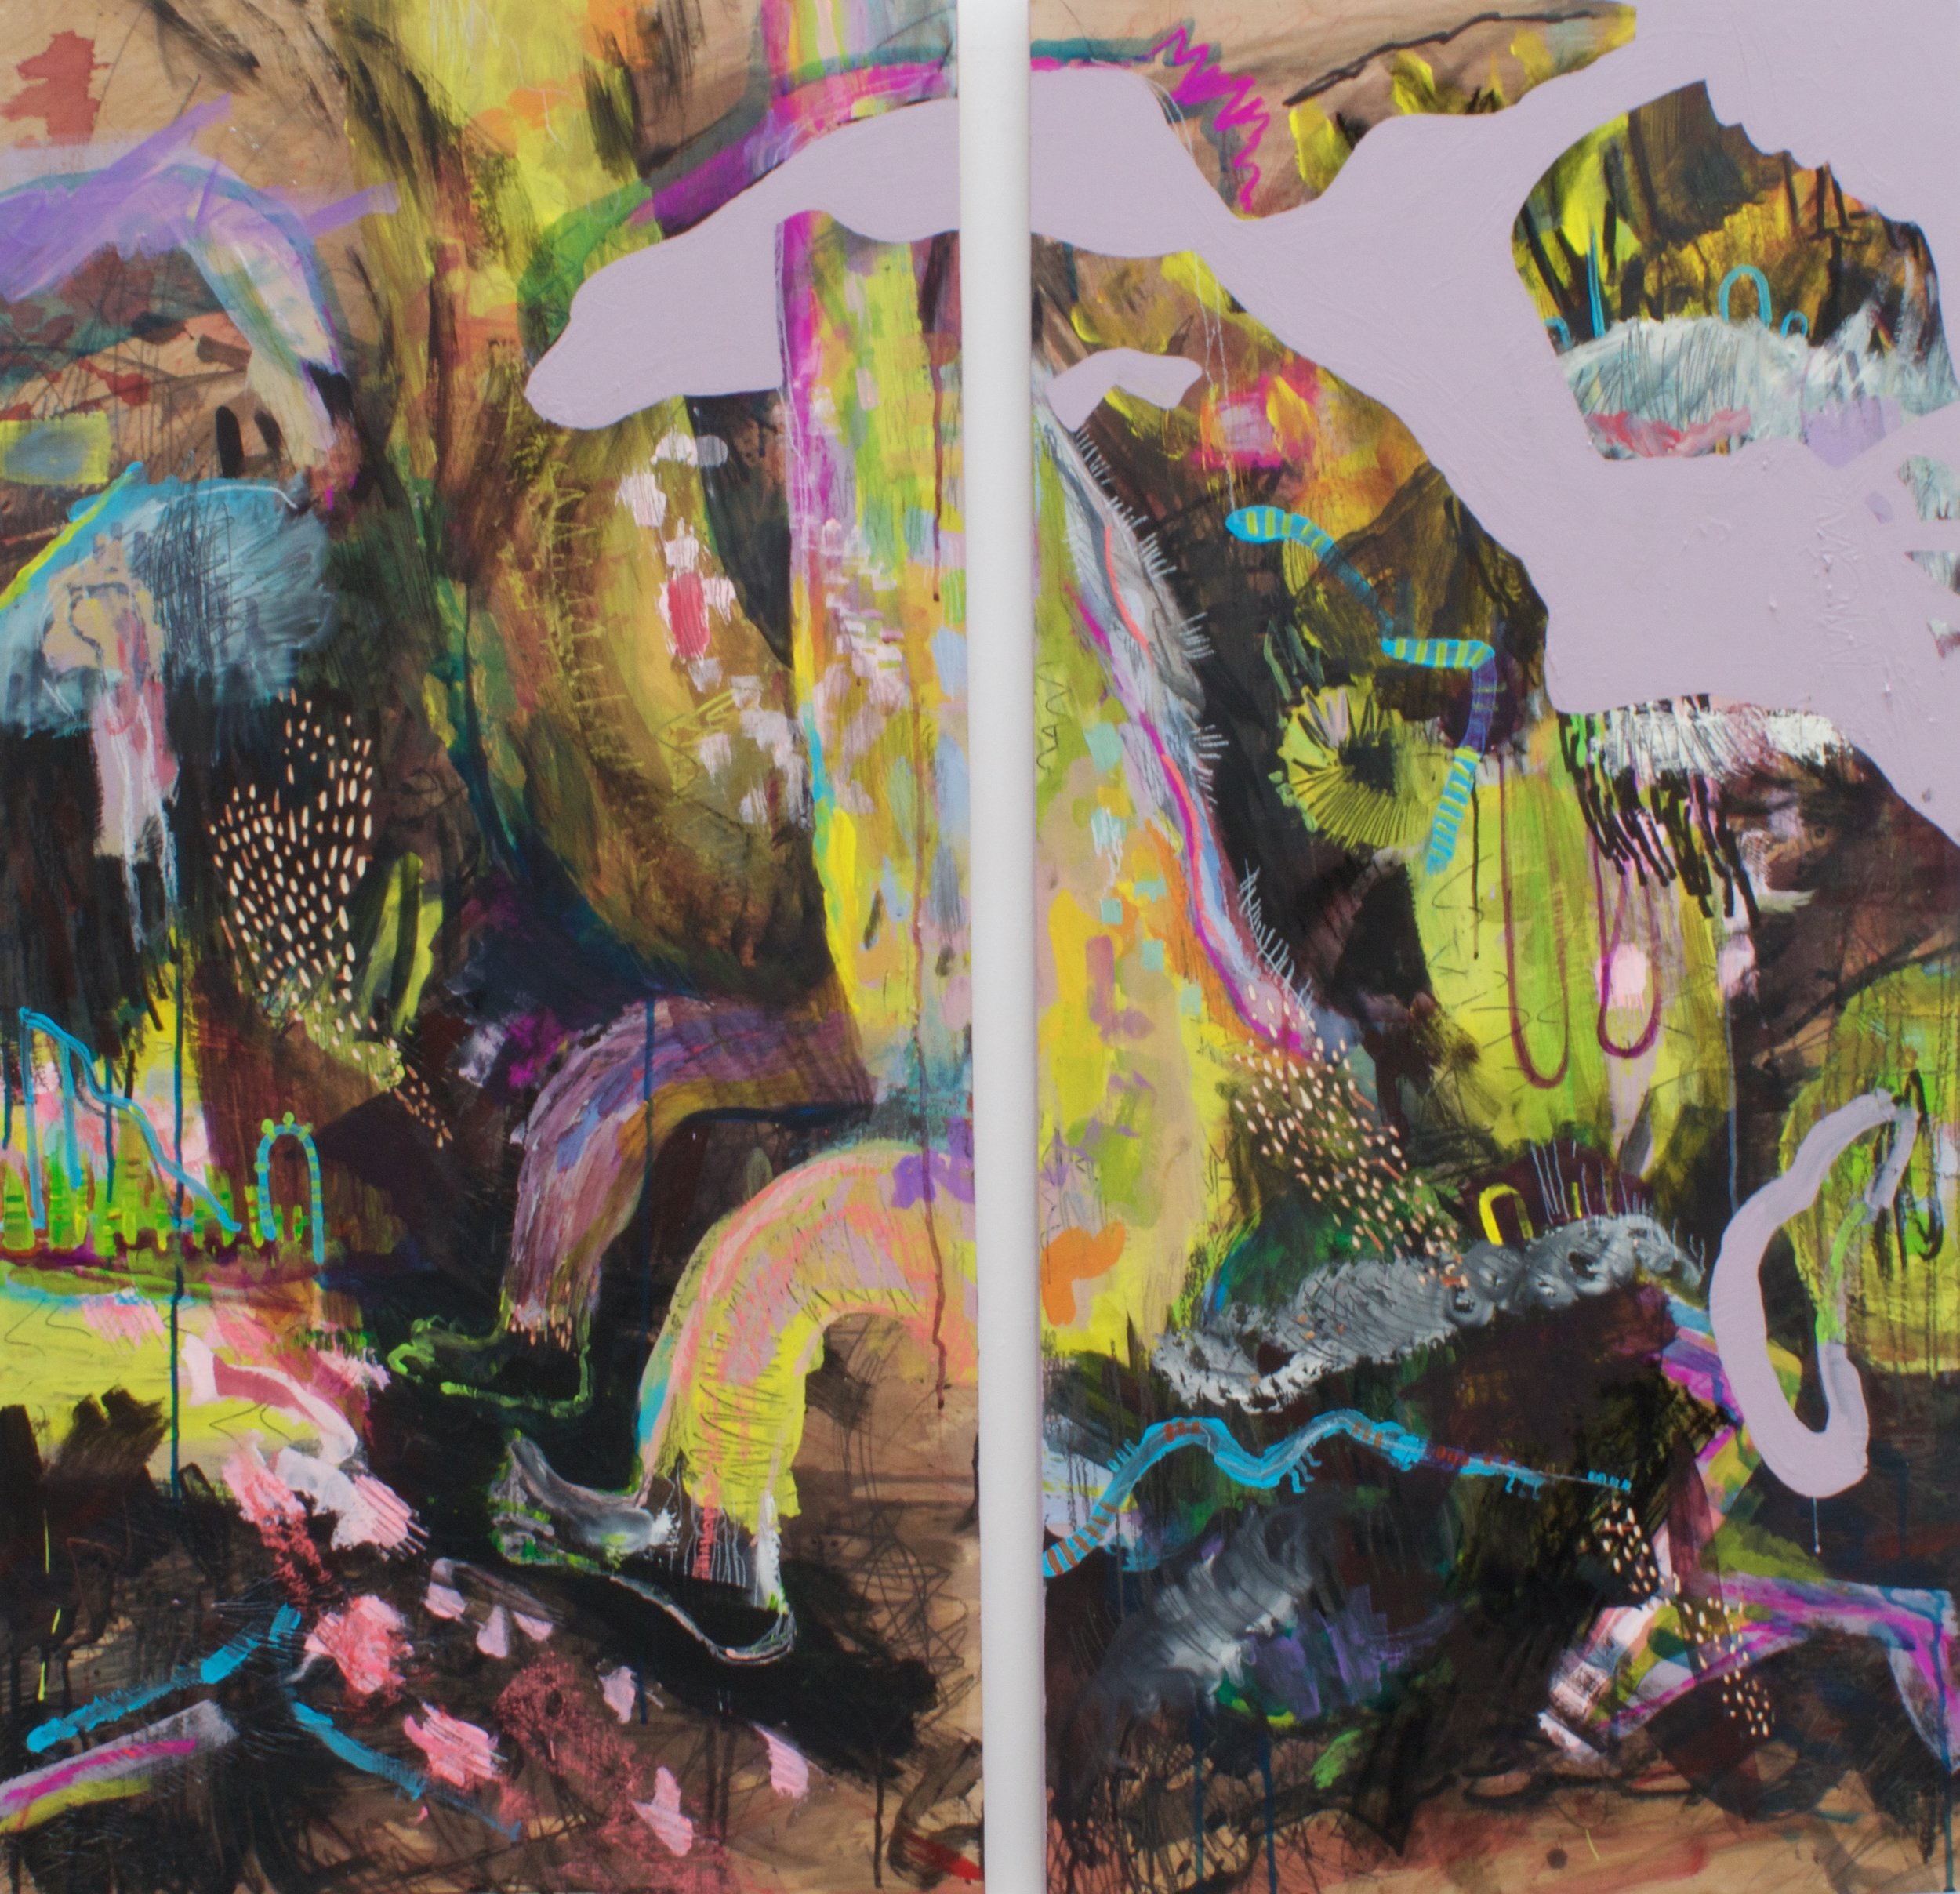 Untitled (Creature) Diptych